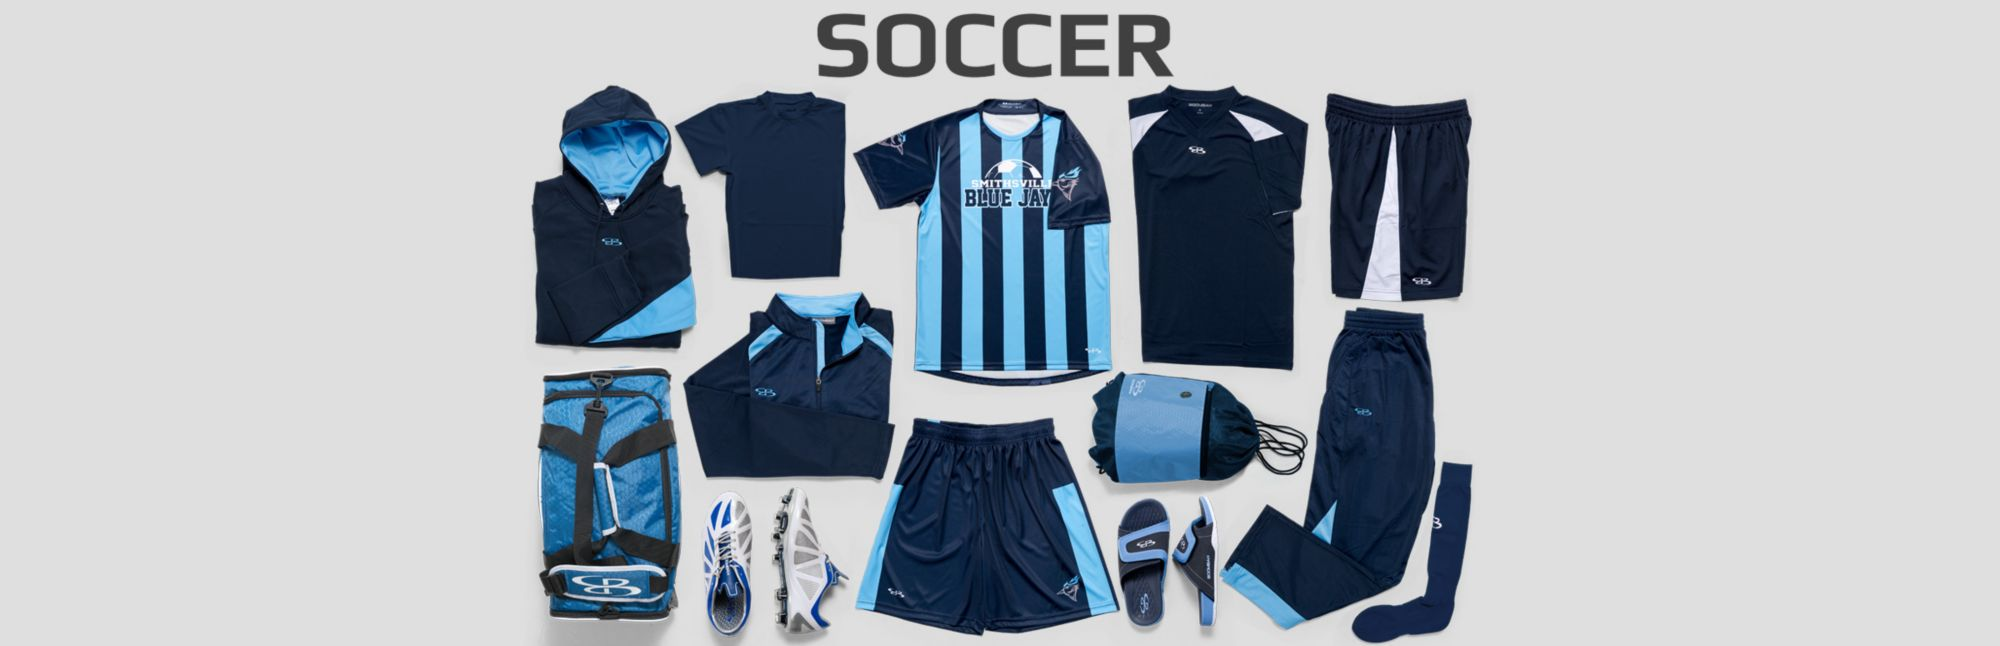 Shop all Soccer Items